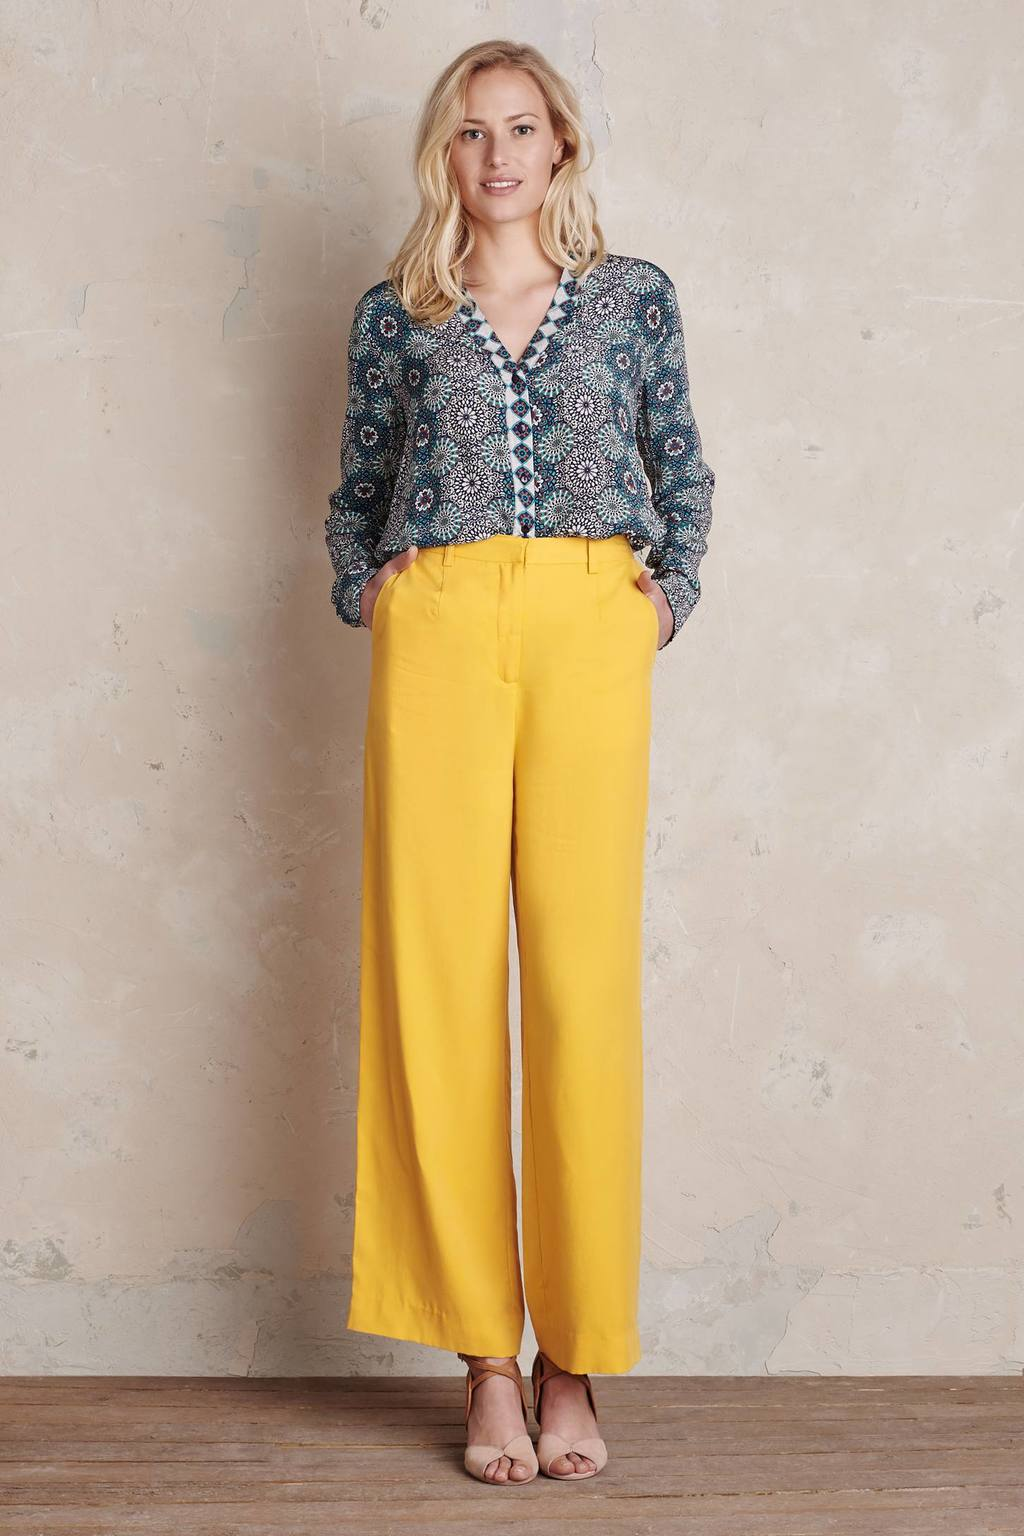 Clara Wide Leg Trousers, Yellow - length: standard; pattern: plain; waist: mid/regular rise; predominant colour: yellow; occasions: casual, creative work; fibres: viscose/rayon - 100%; texture group: crepes; fit: wide leg; pattern type: fabric; style: standard; season: s/s 2016; wardrobe: highlight